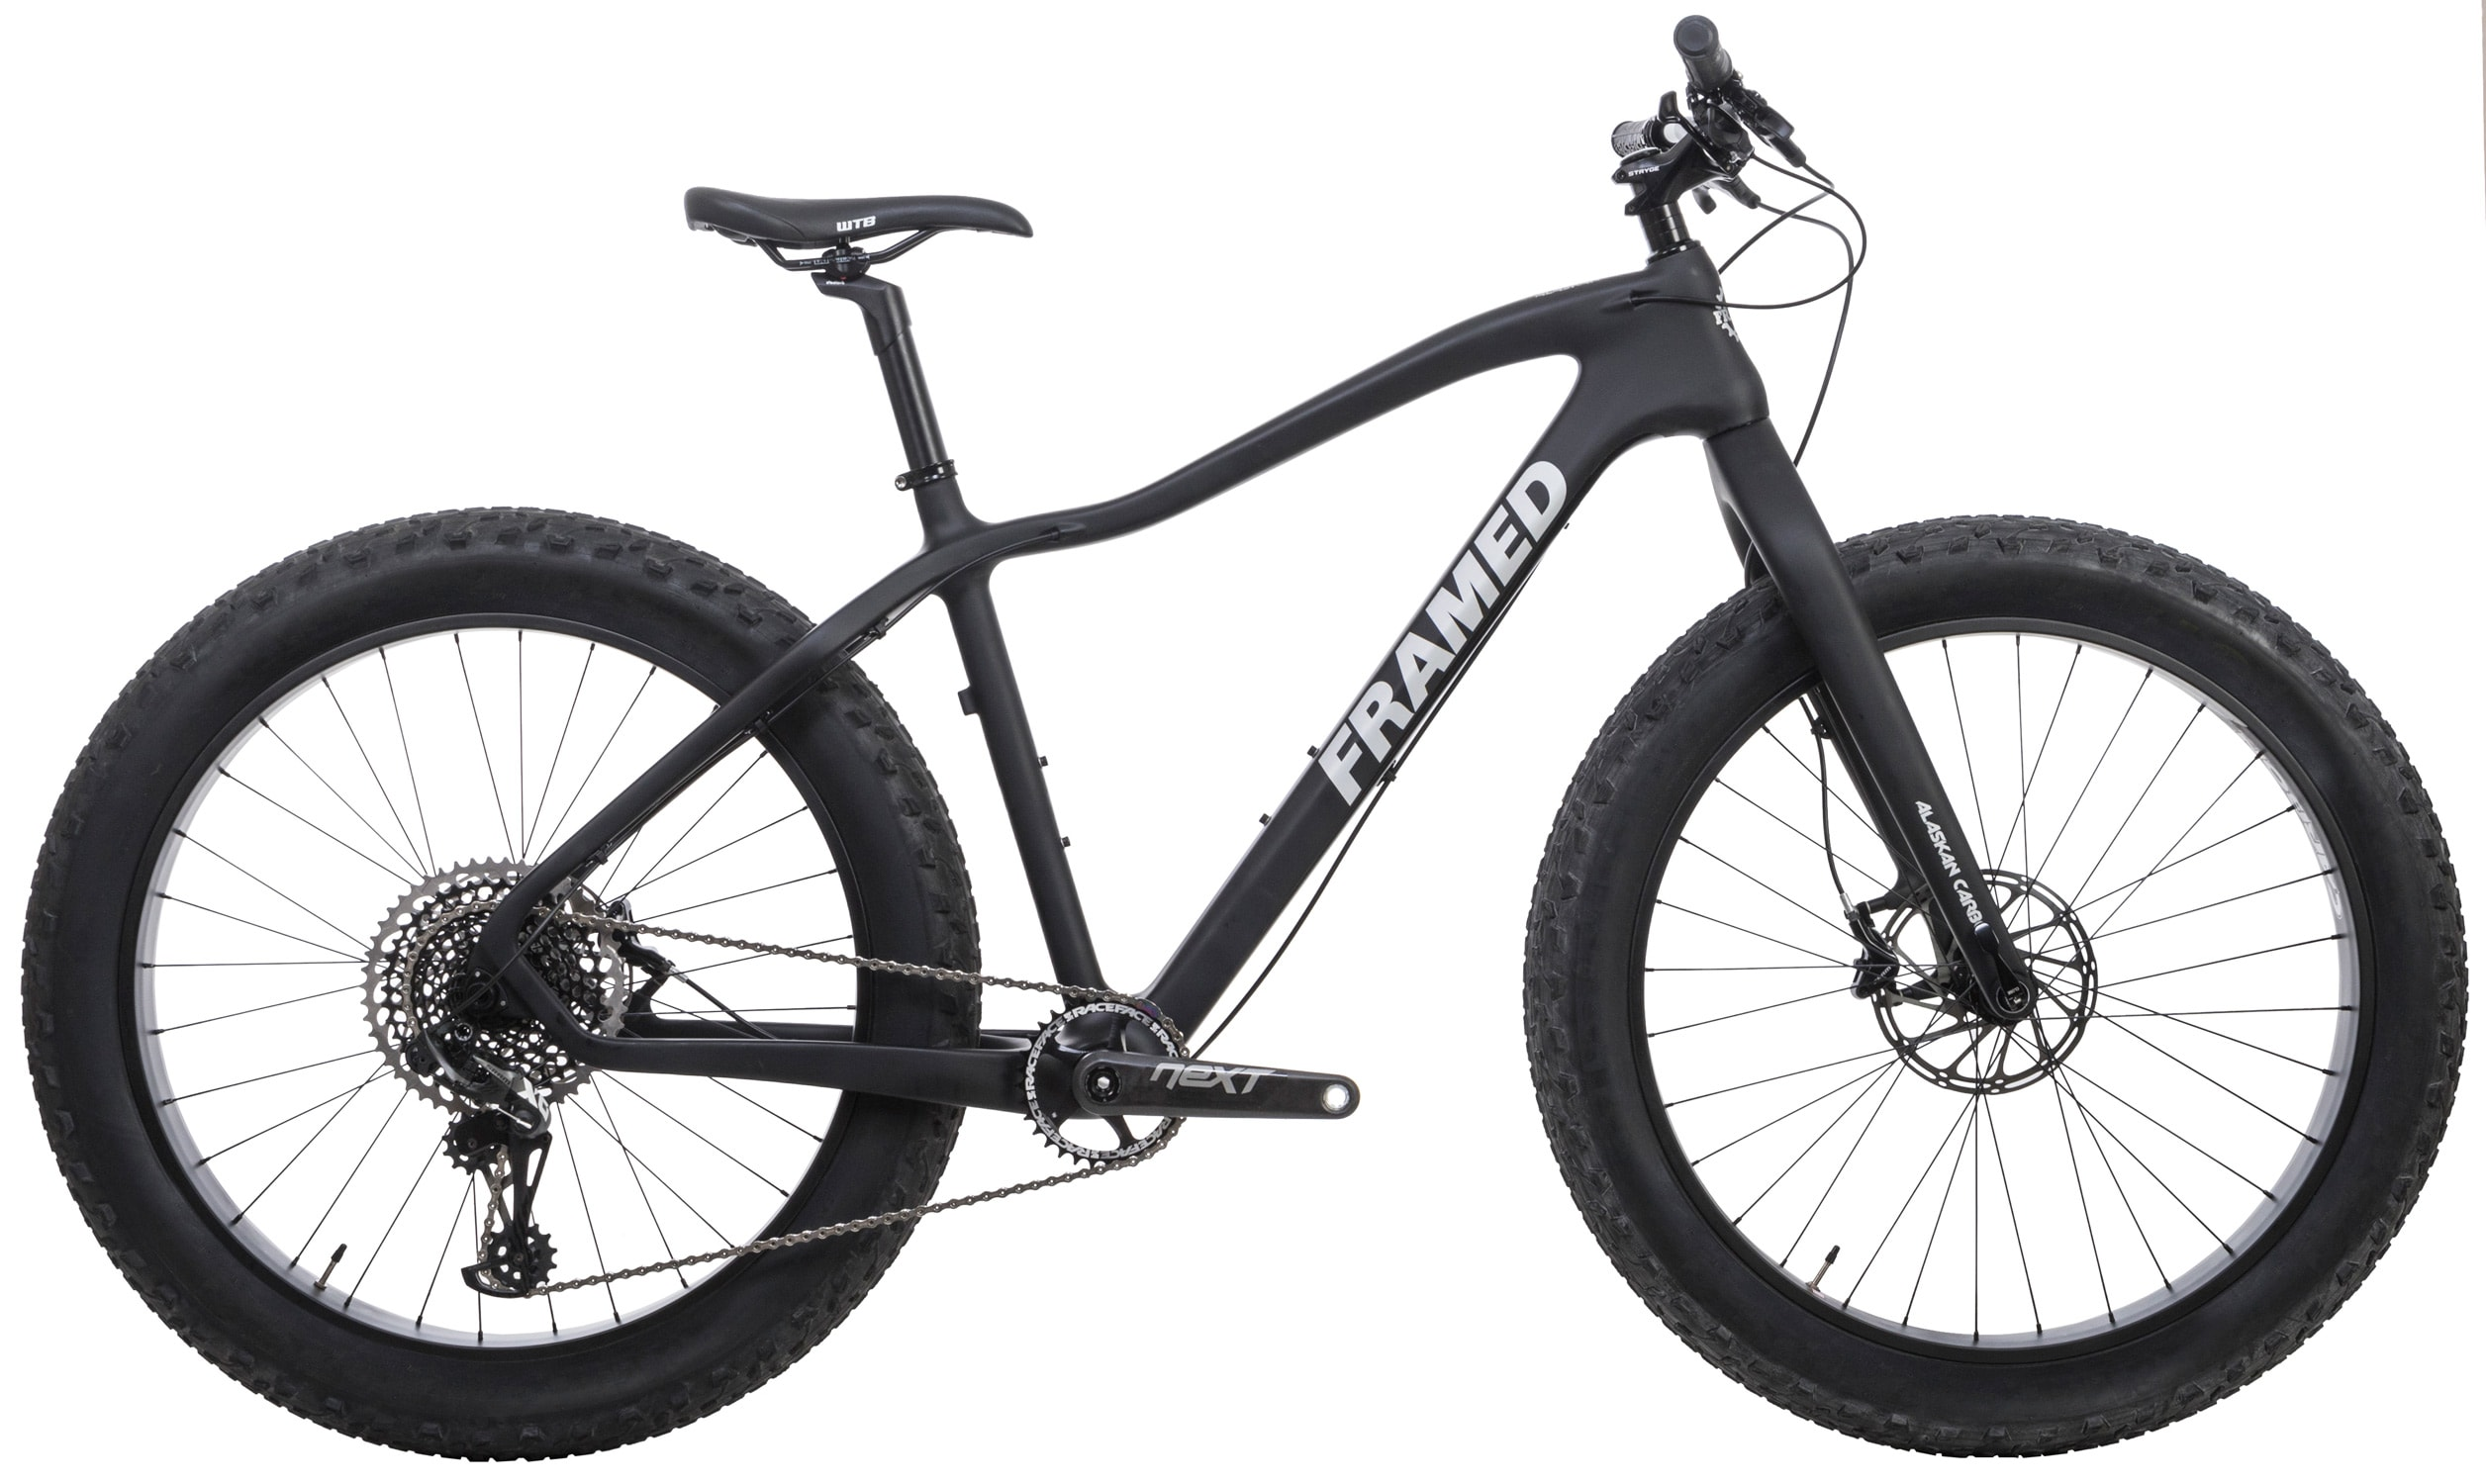 Framed Alaskan Carbon Fat Bike X01 Eagle 1x12 Ltd Carbon